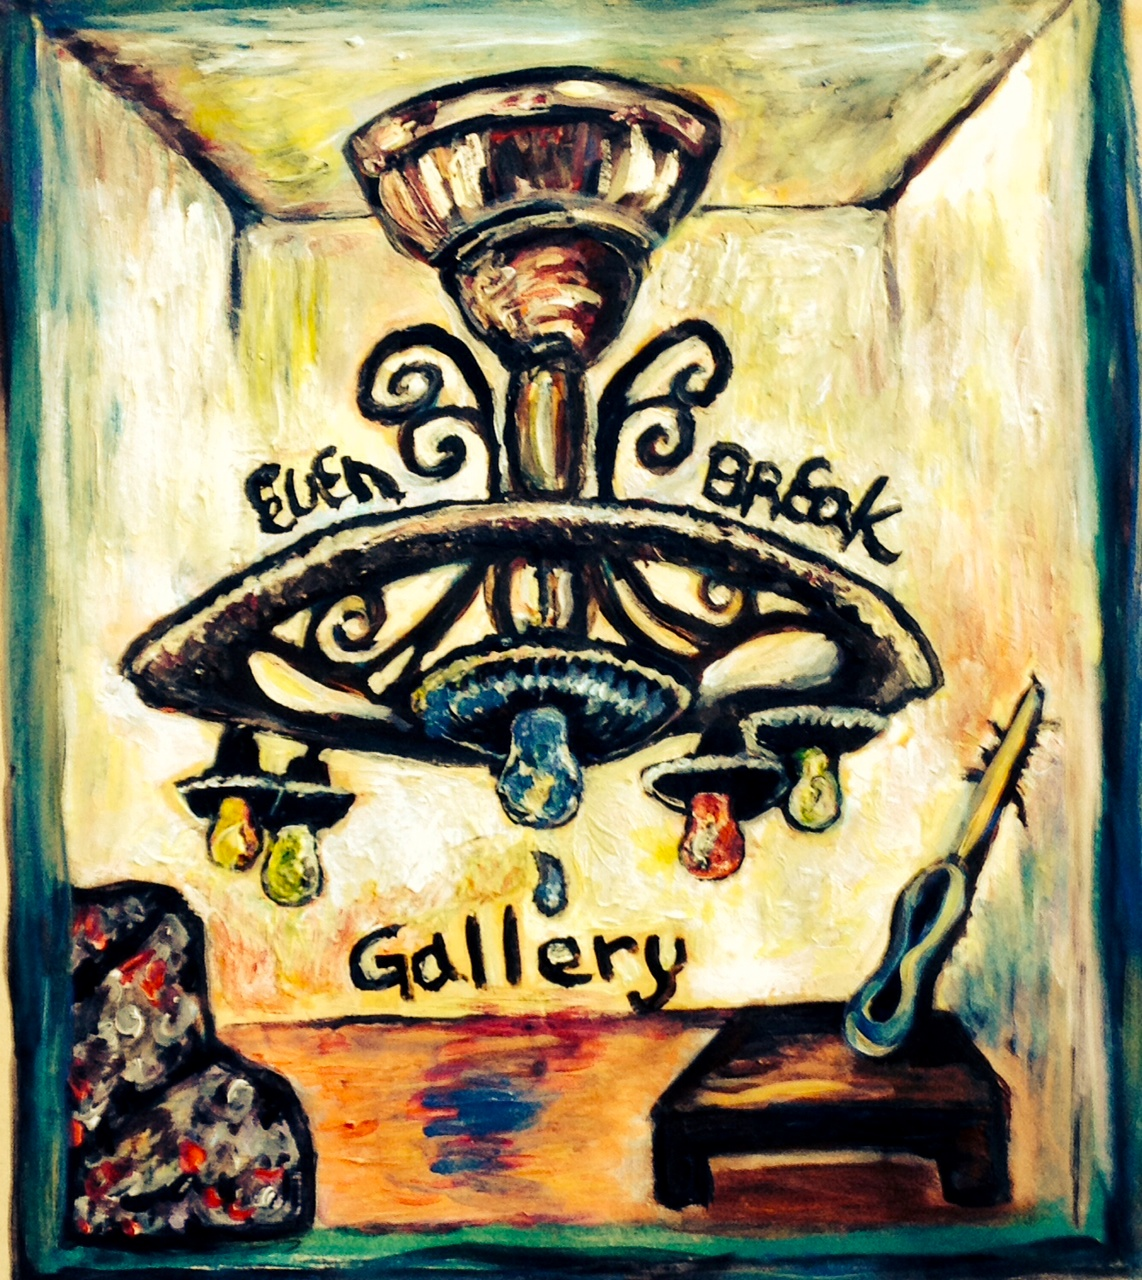 Even Break Gallery / February 10th, 2014 / Painting by Gretchen Seichrist